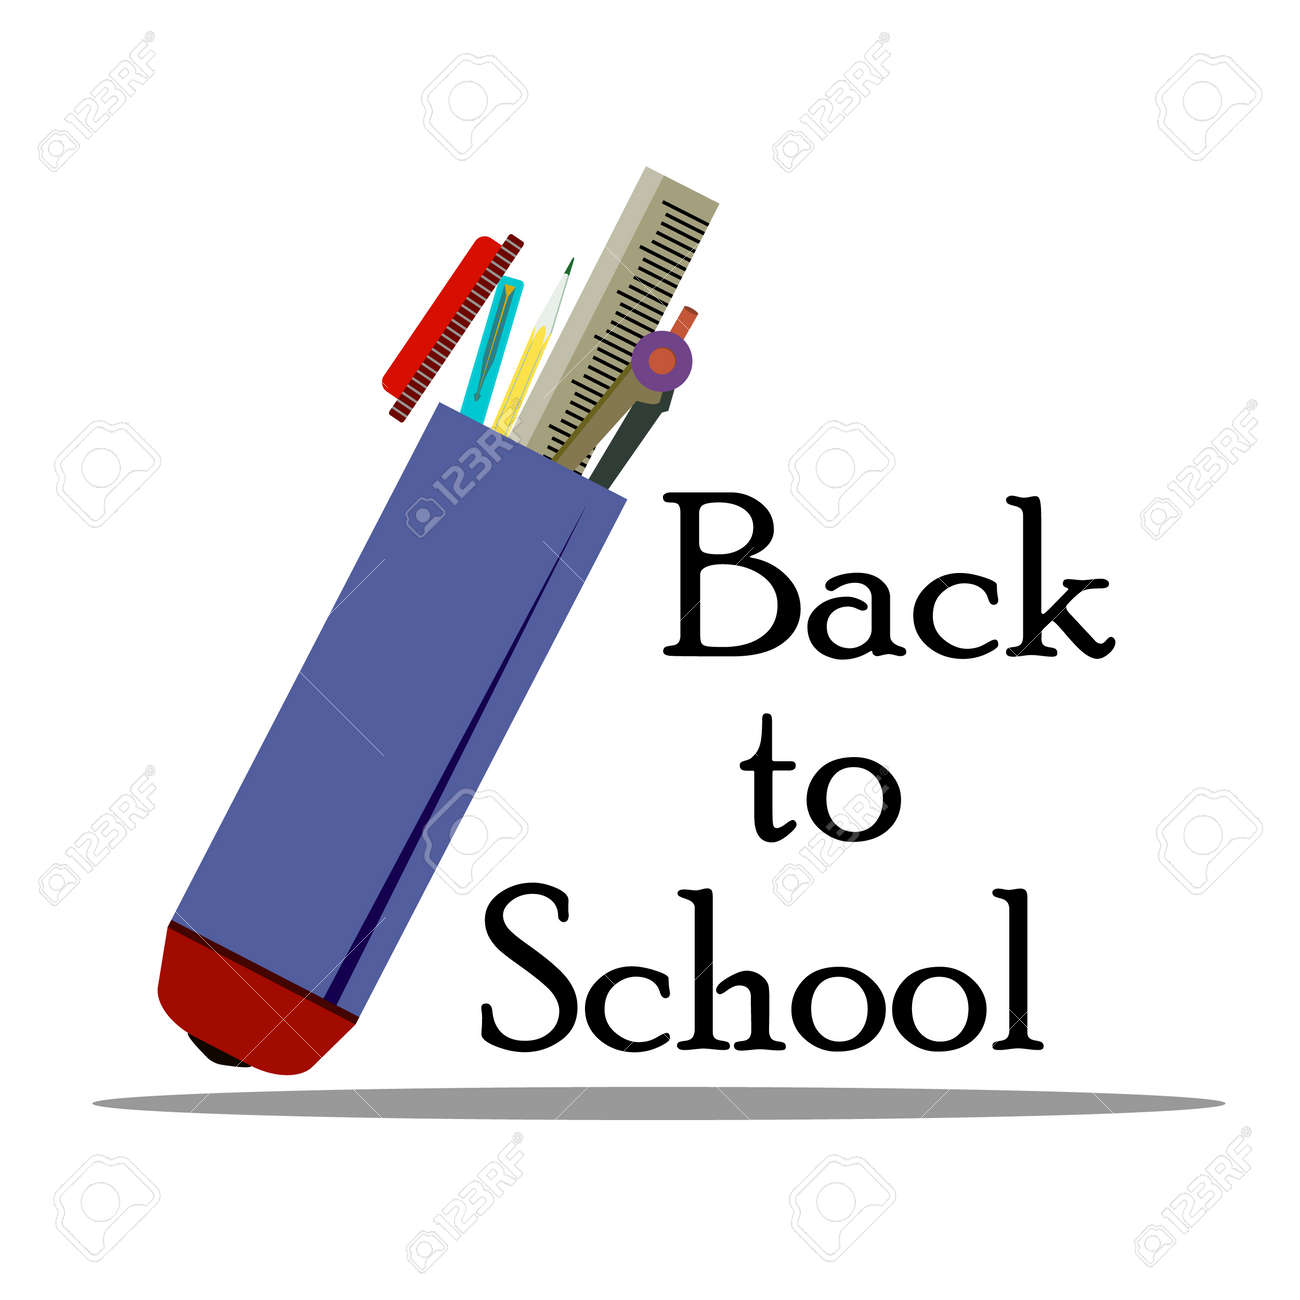 Inscription Back to school whith school supplies, vector illustration isolated on a white background - 103984260